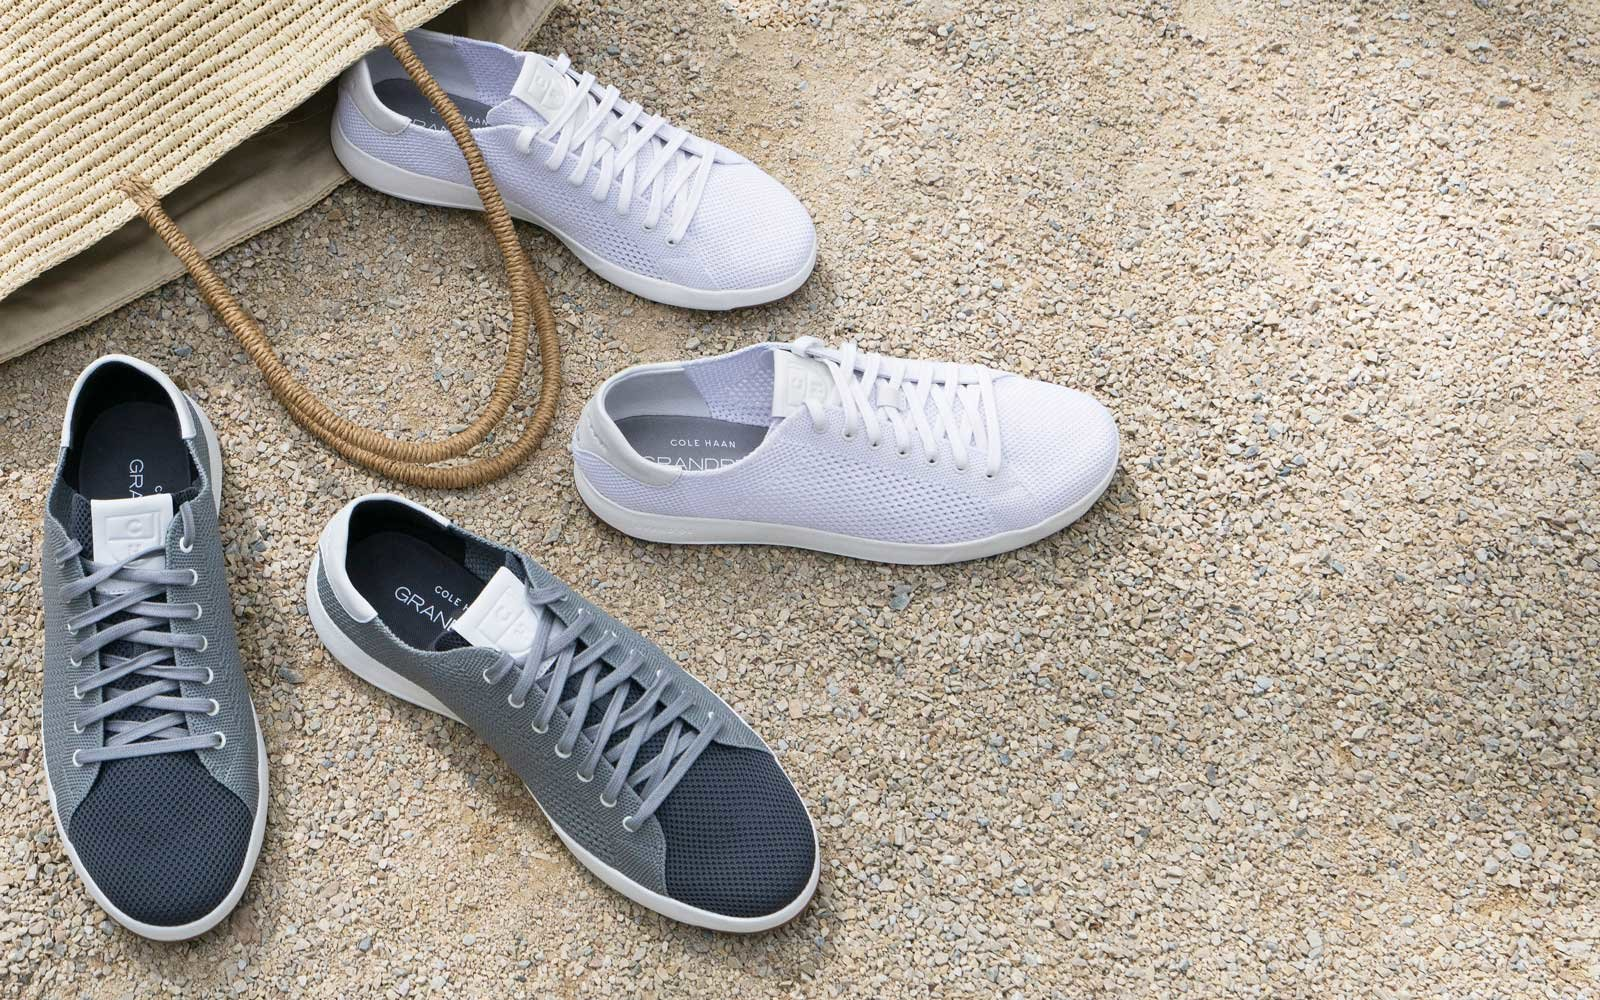 db0255d405 Cole Haan's new knit sneaker is the perfect travel shoe | Travel + ...